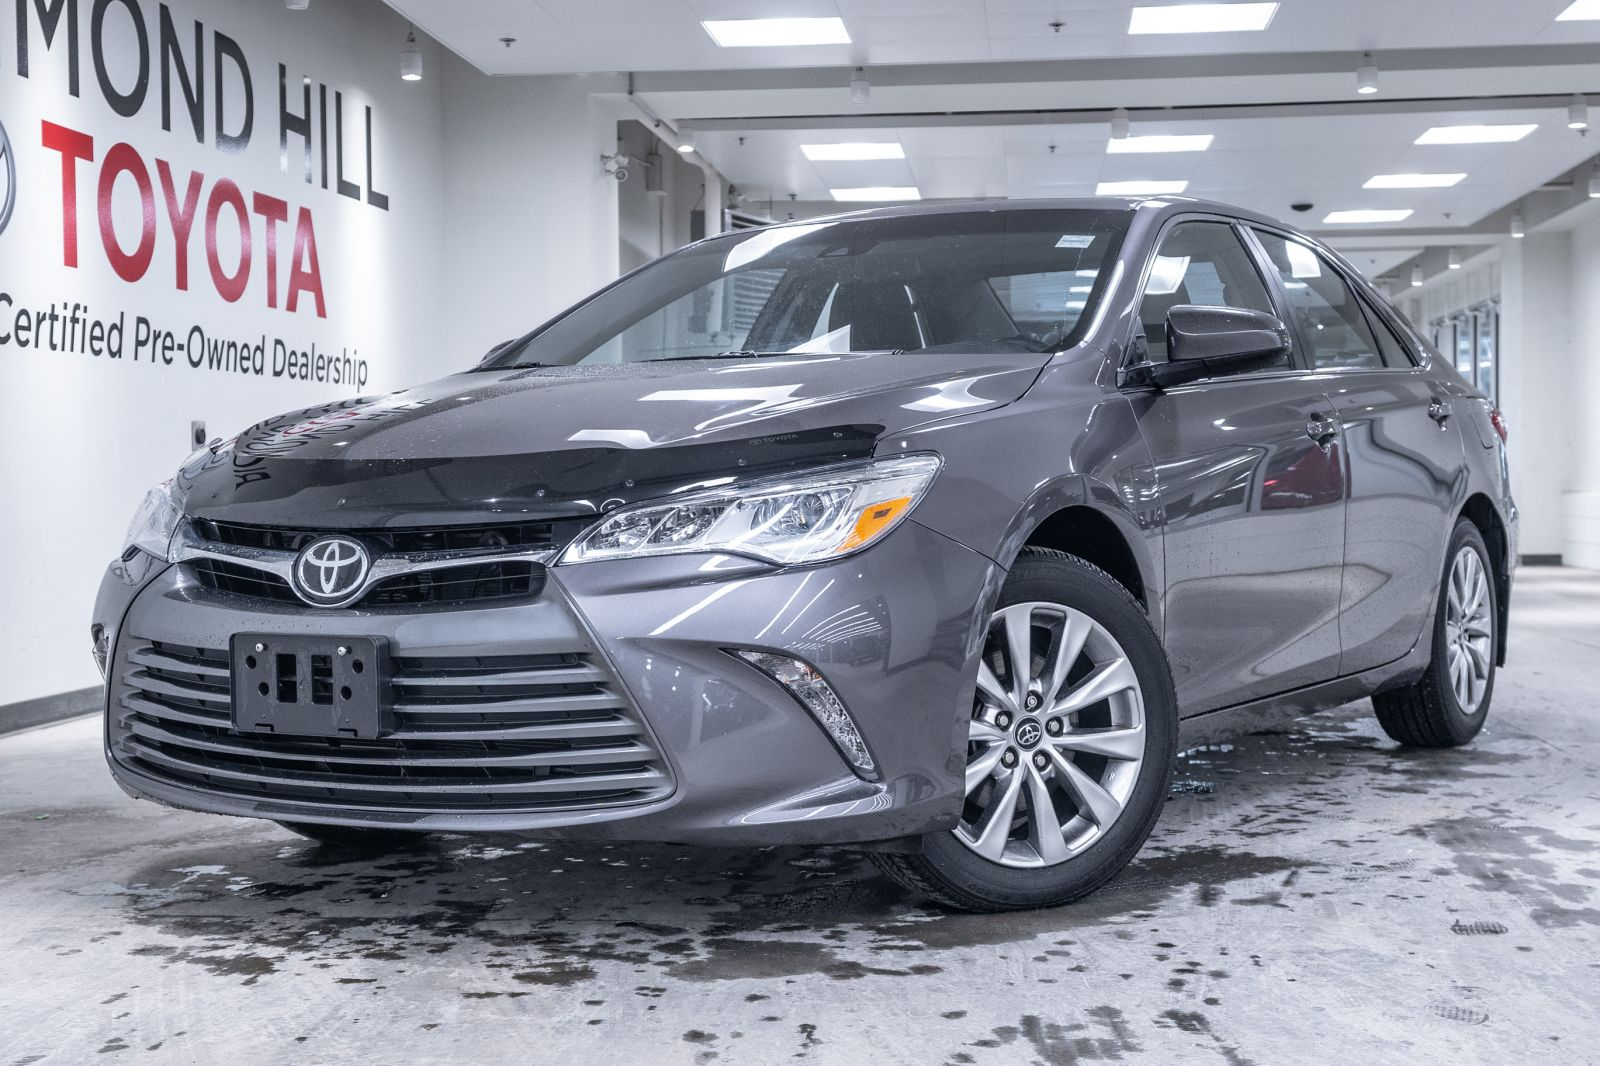 2017 Toyota Camry Image